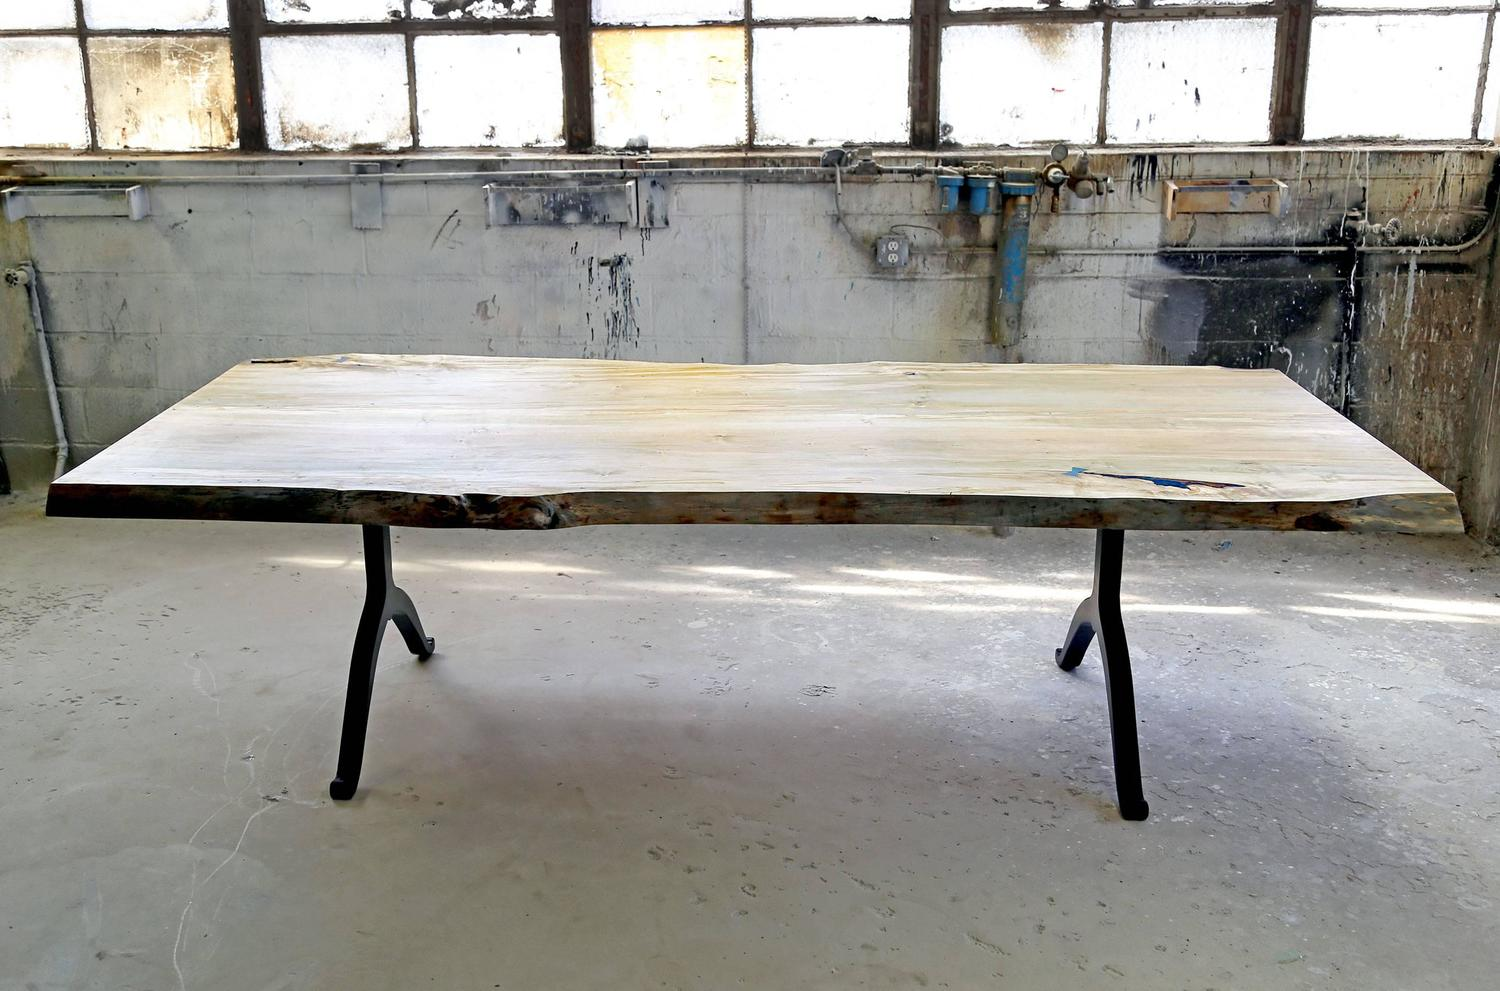 Sentient signature ambrosia maple live edge slab table for Live edge wood slabs new york